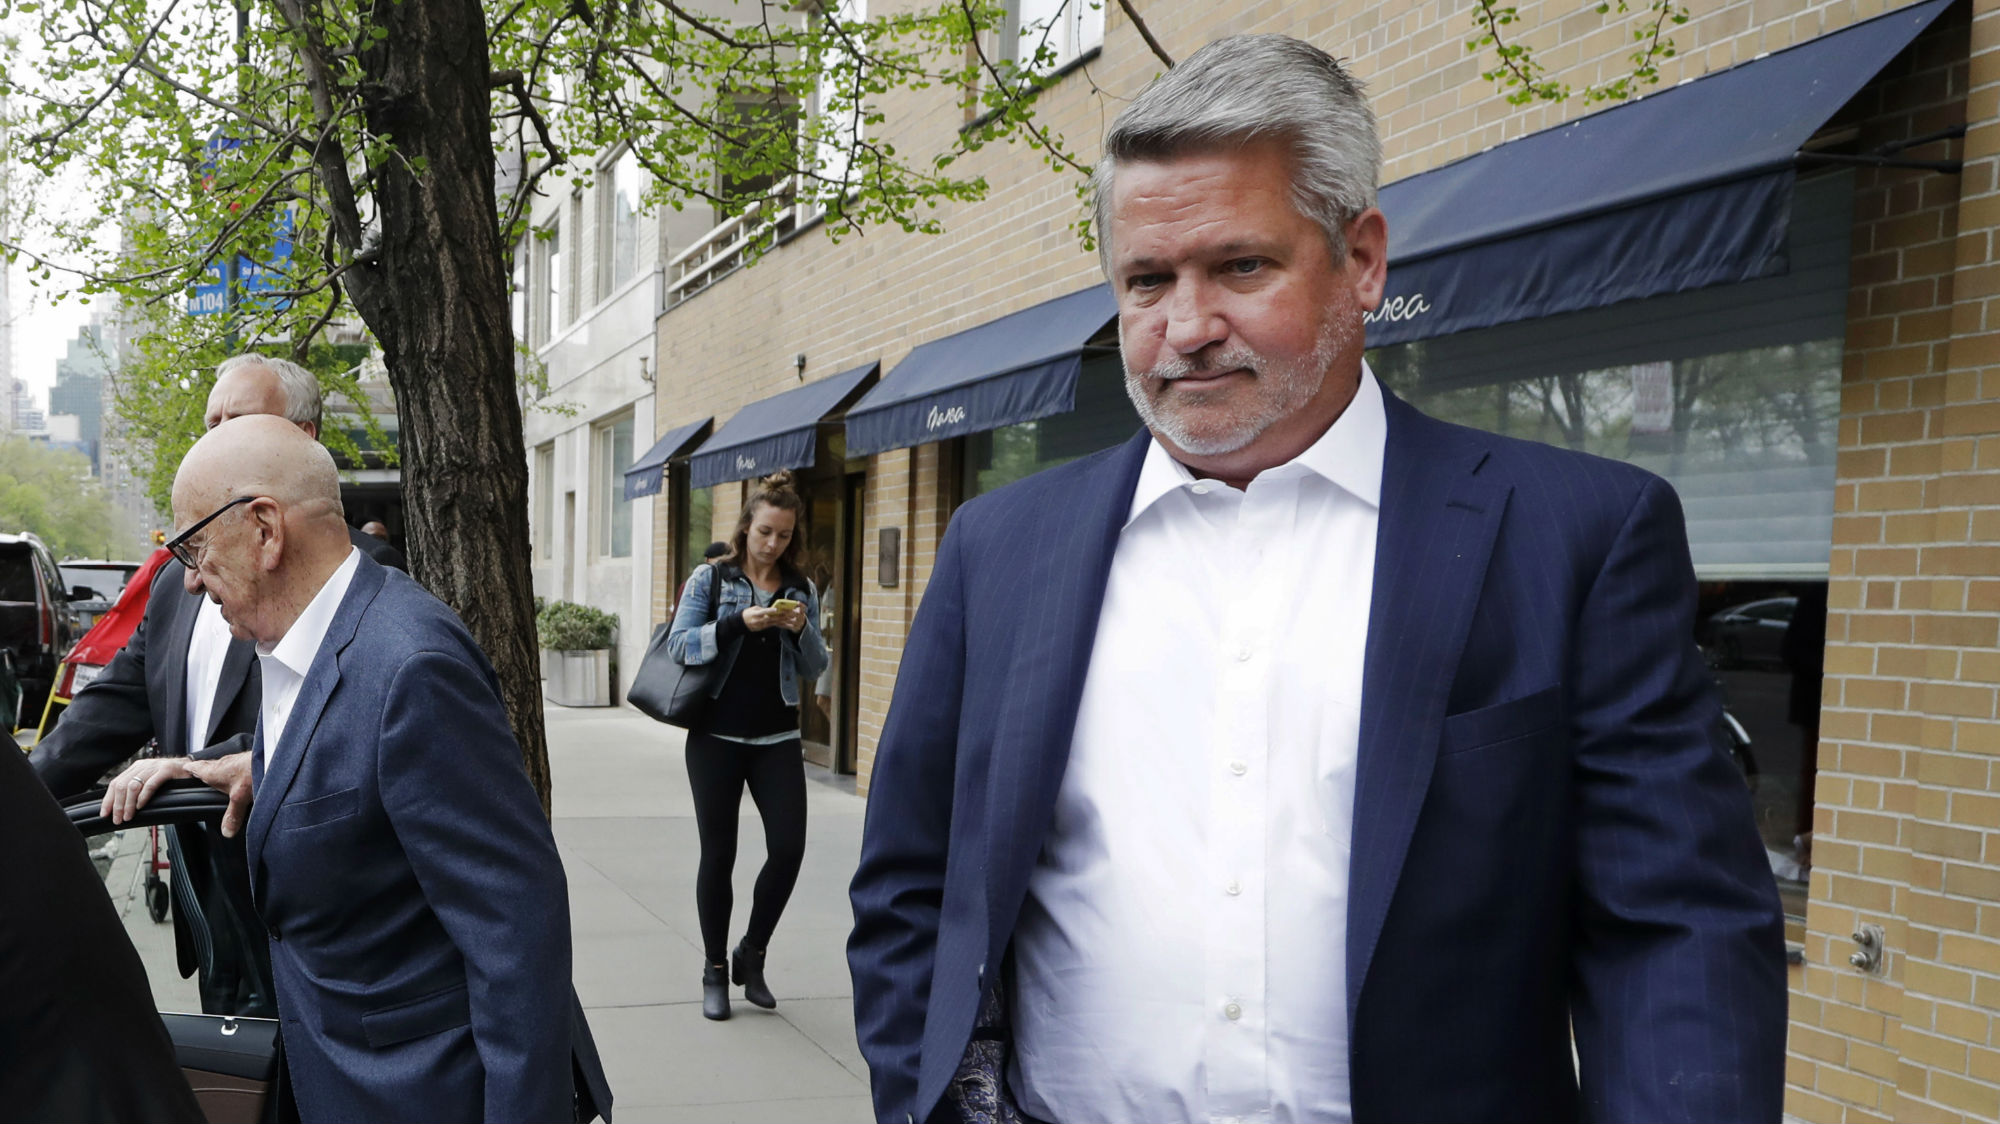 Ex-Fox News Boss Bill Shine Officially Named White House Communications Director